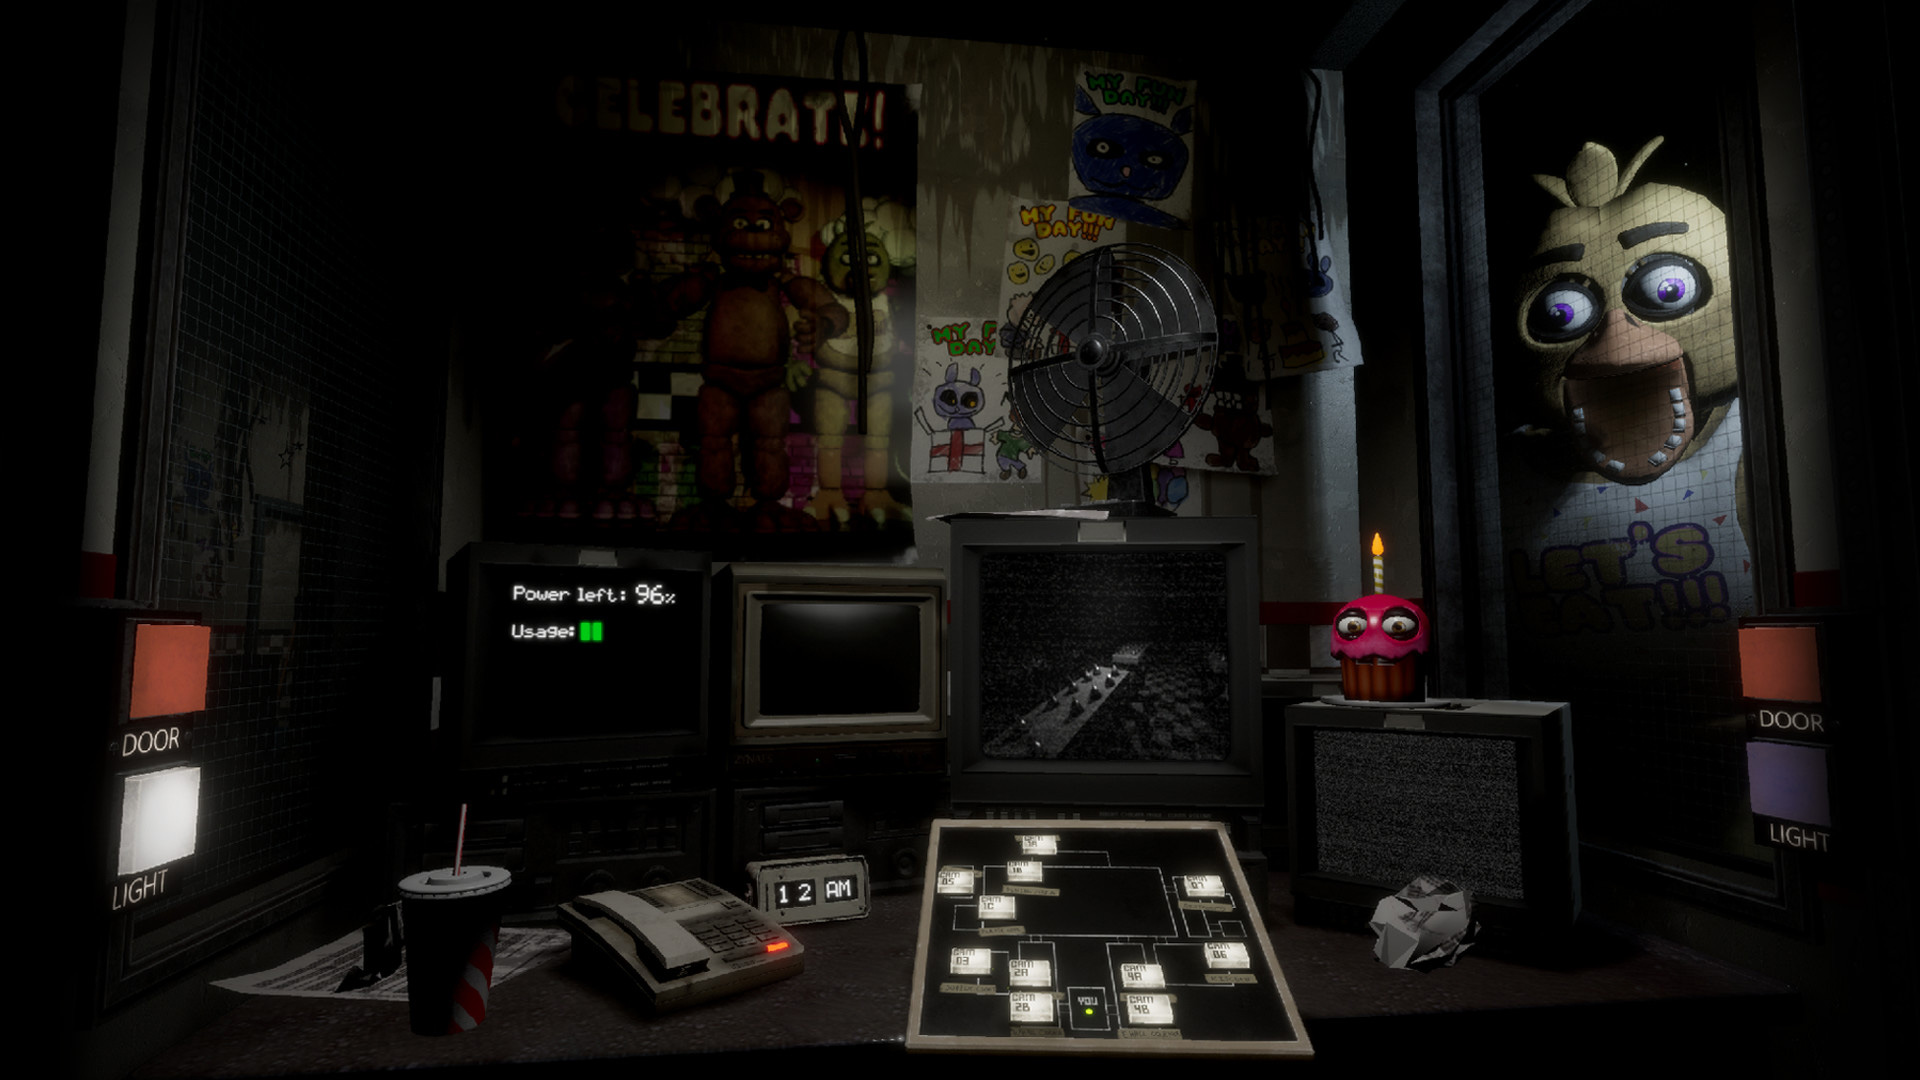 Five Nights at Freddy's: Help Wanted is coming to Switch, Xbox One, and Oculus Quest in 2020 screenshot